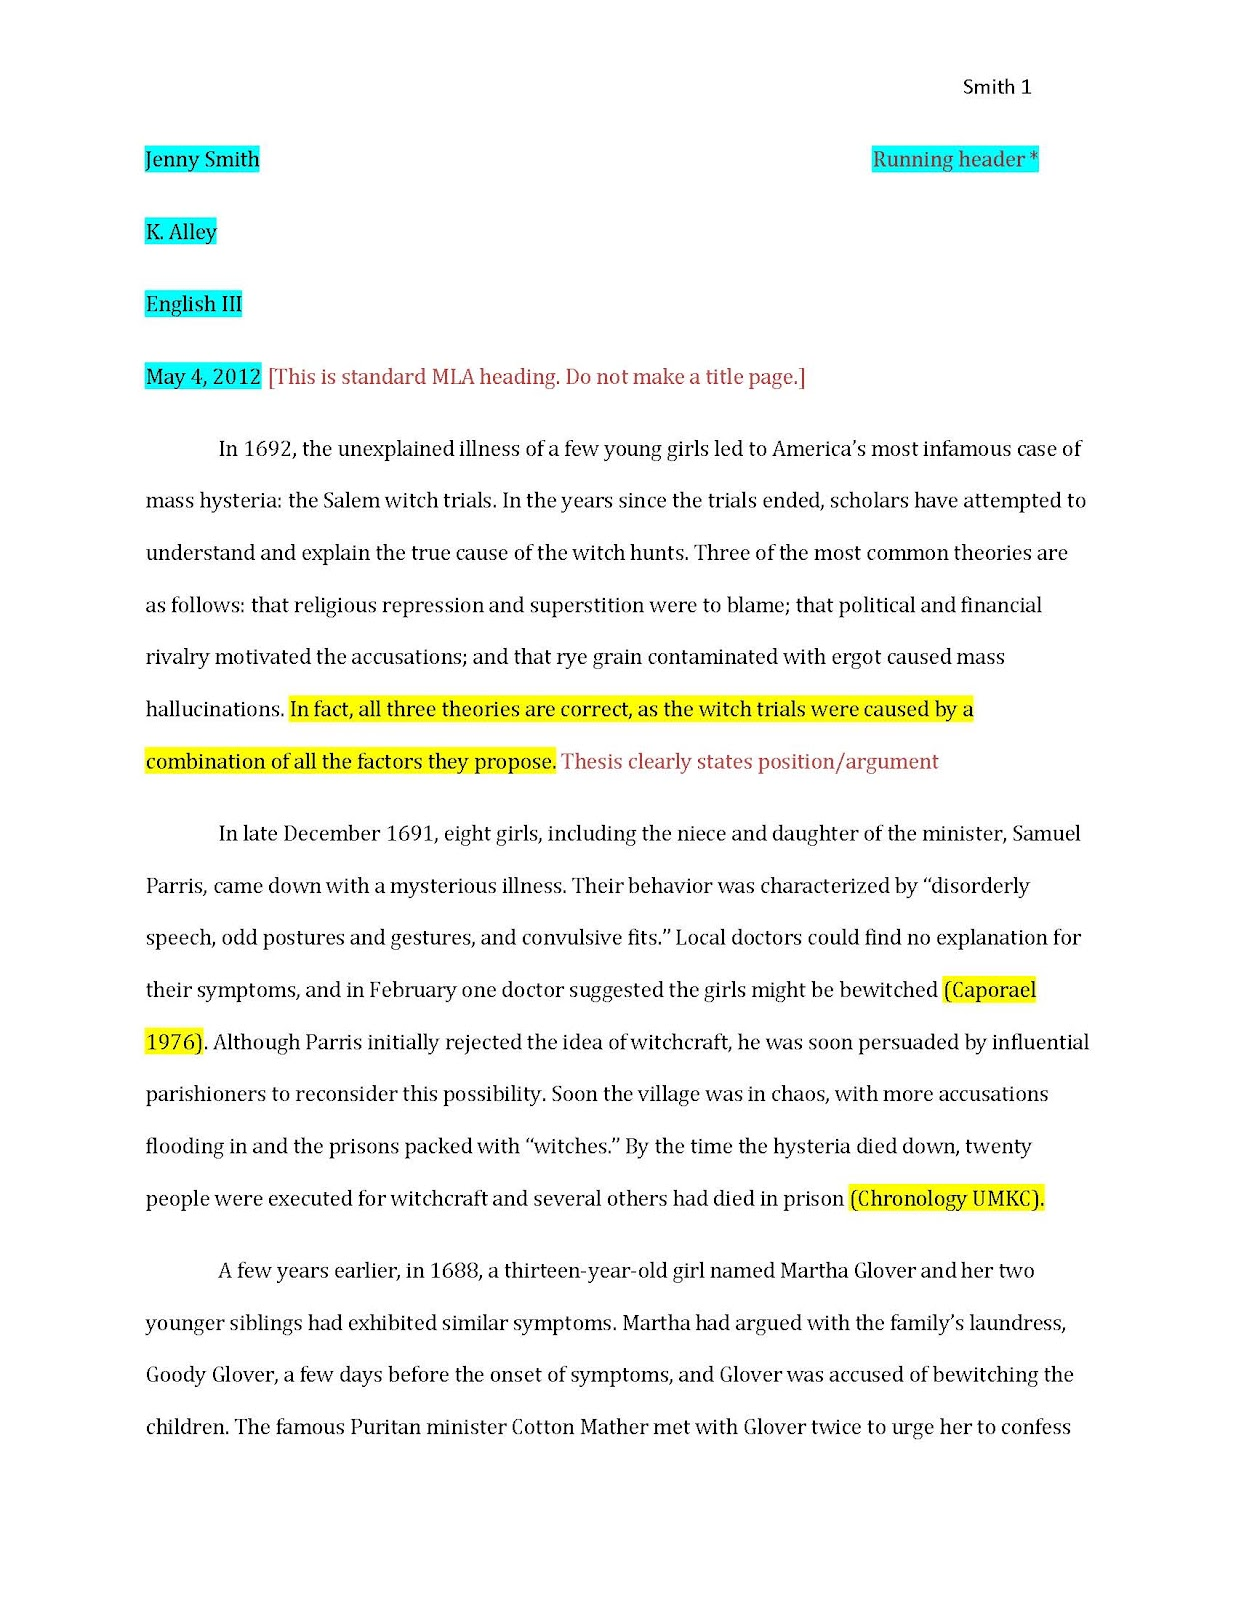 014 Examplepaper Page 1 How To Quote Book In An Essay Formidable A Apa Style With Multiple Authors Full